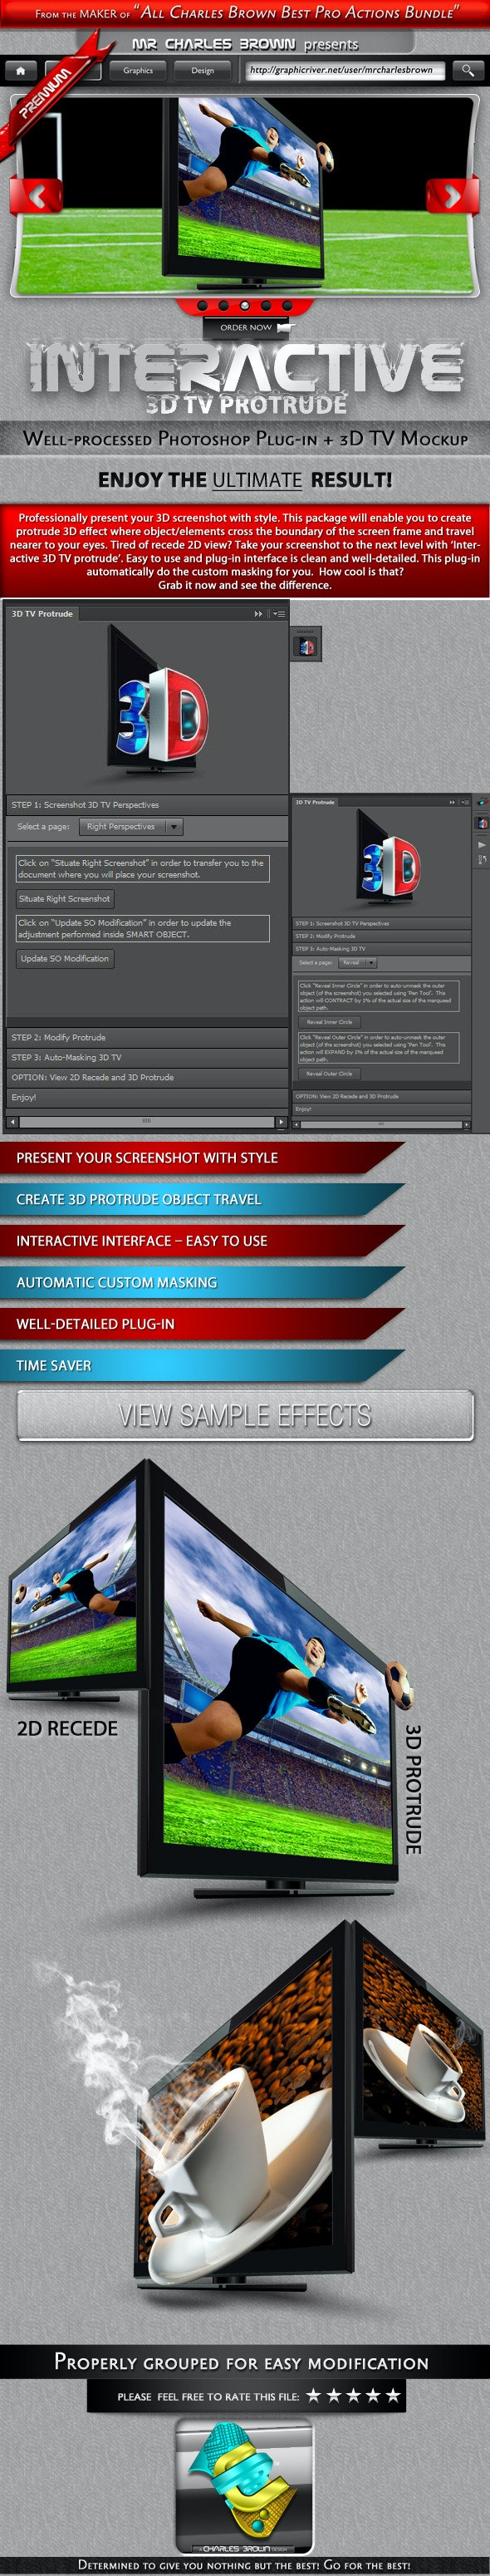 Interactive 3D TV Protrude - Actions Photoshop